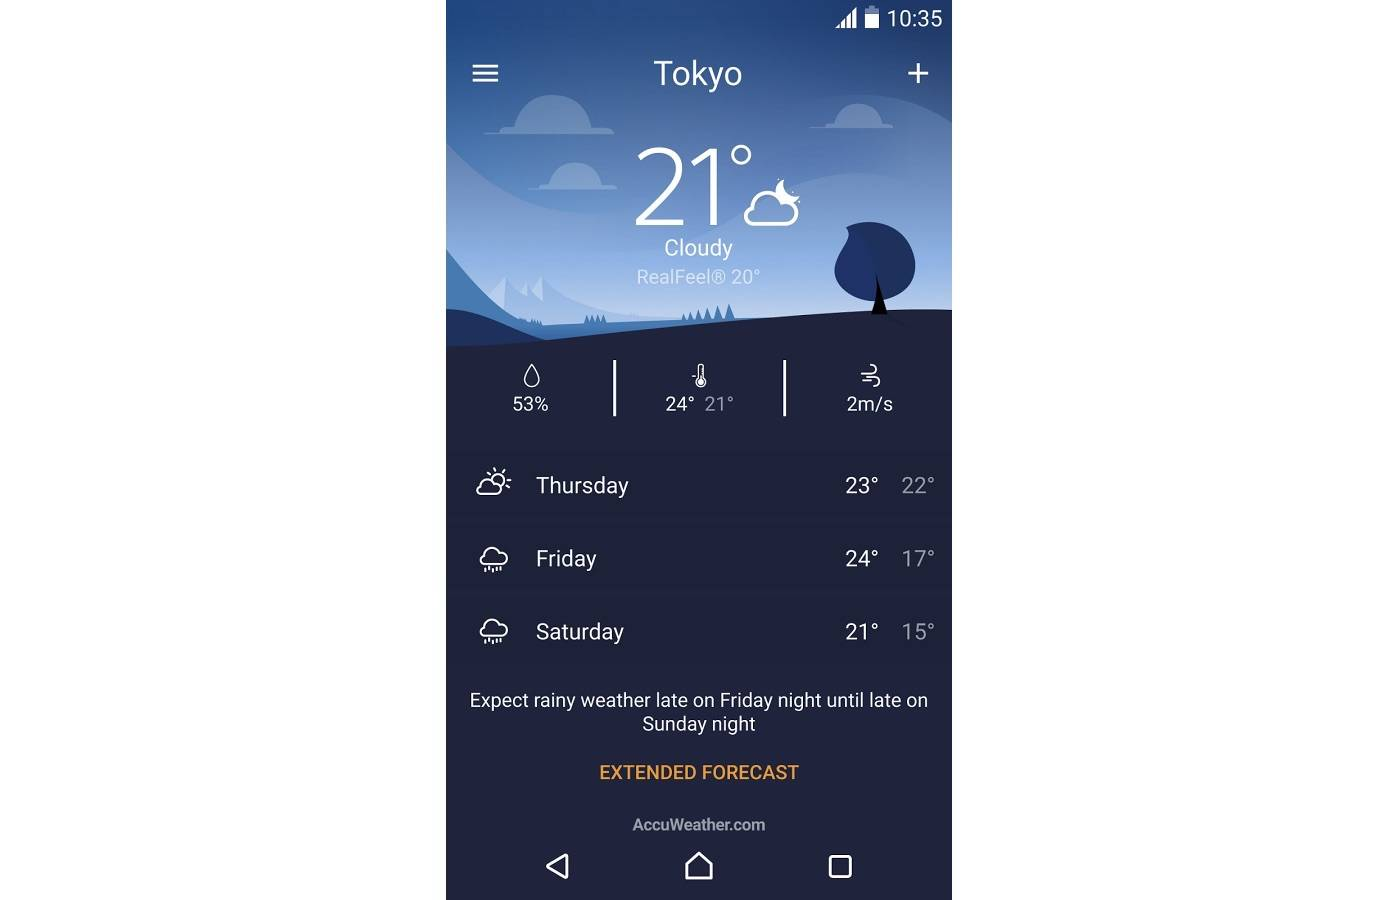 Sony Weather app ready for download, exclusive to Xperia devices